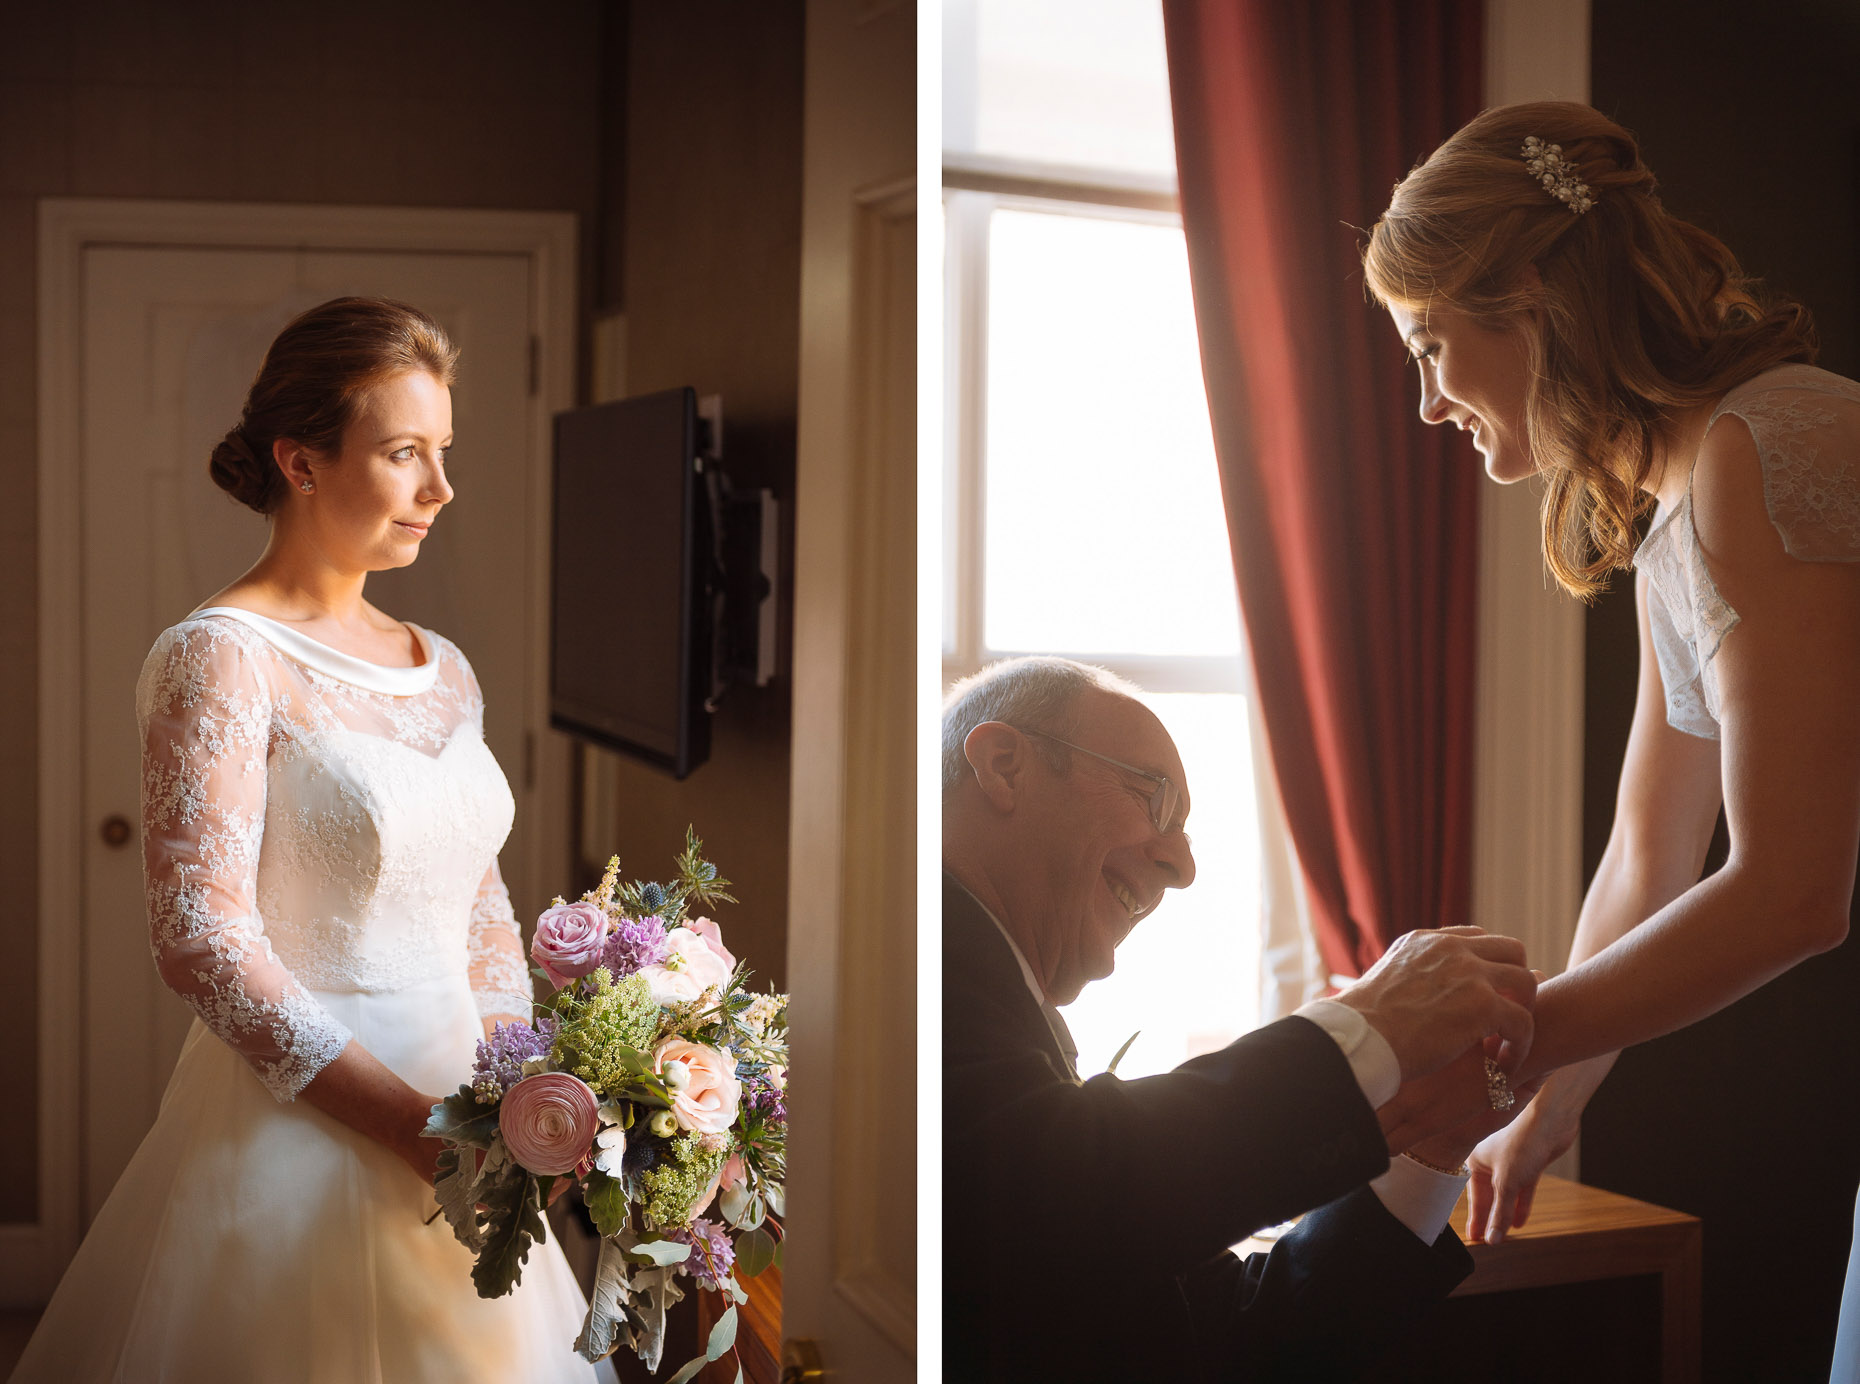 bridal-prep-wedding-dress-reportage-photography-03